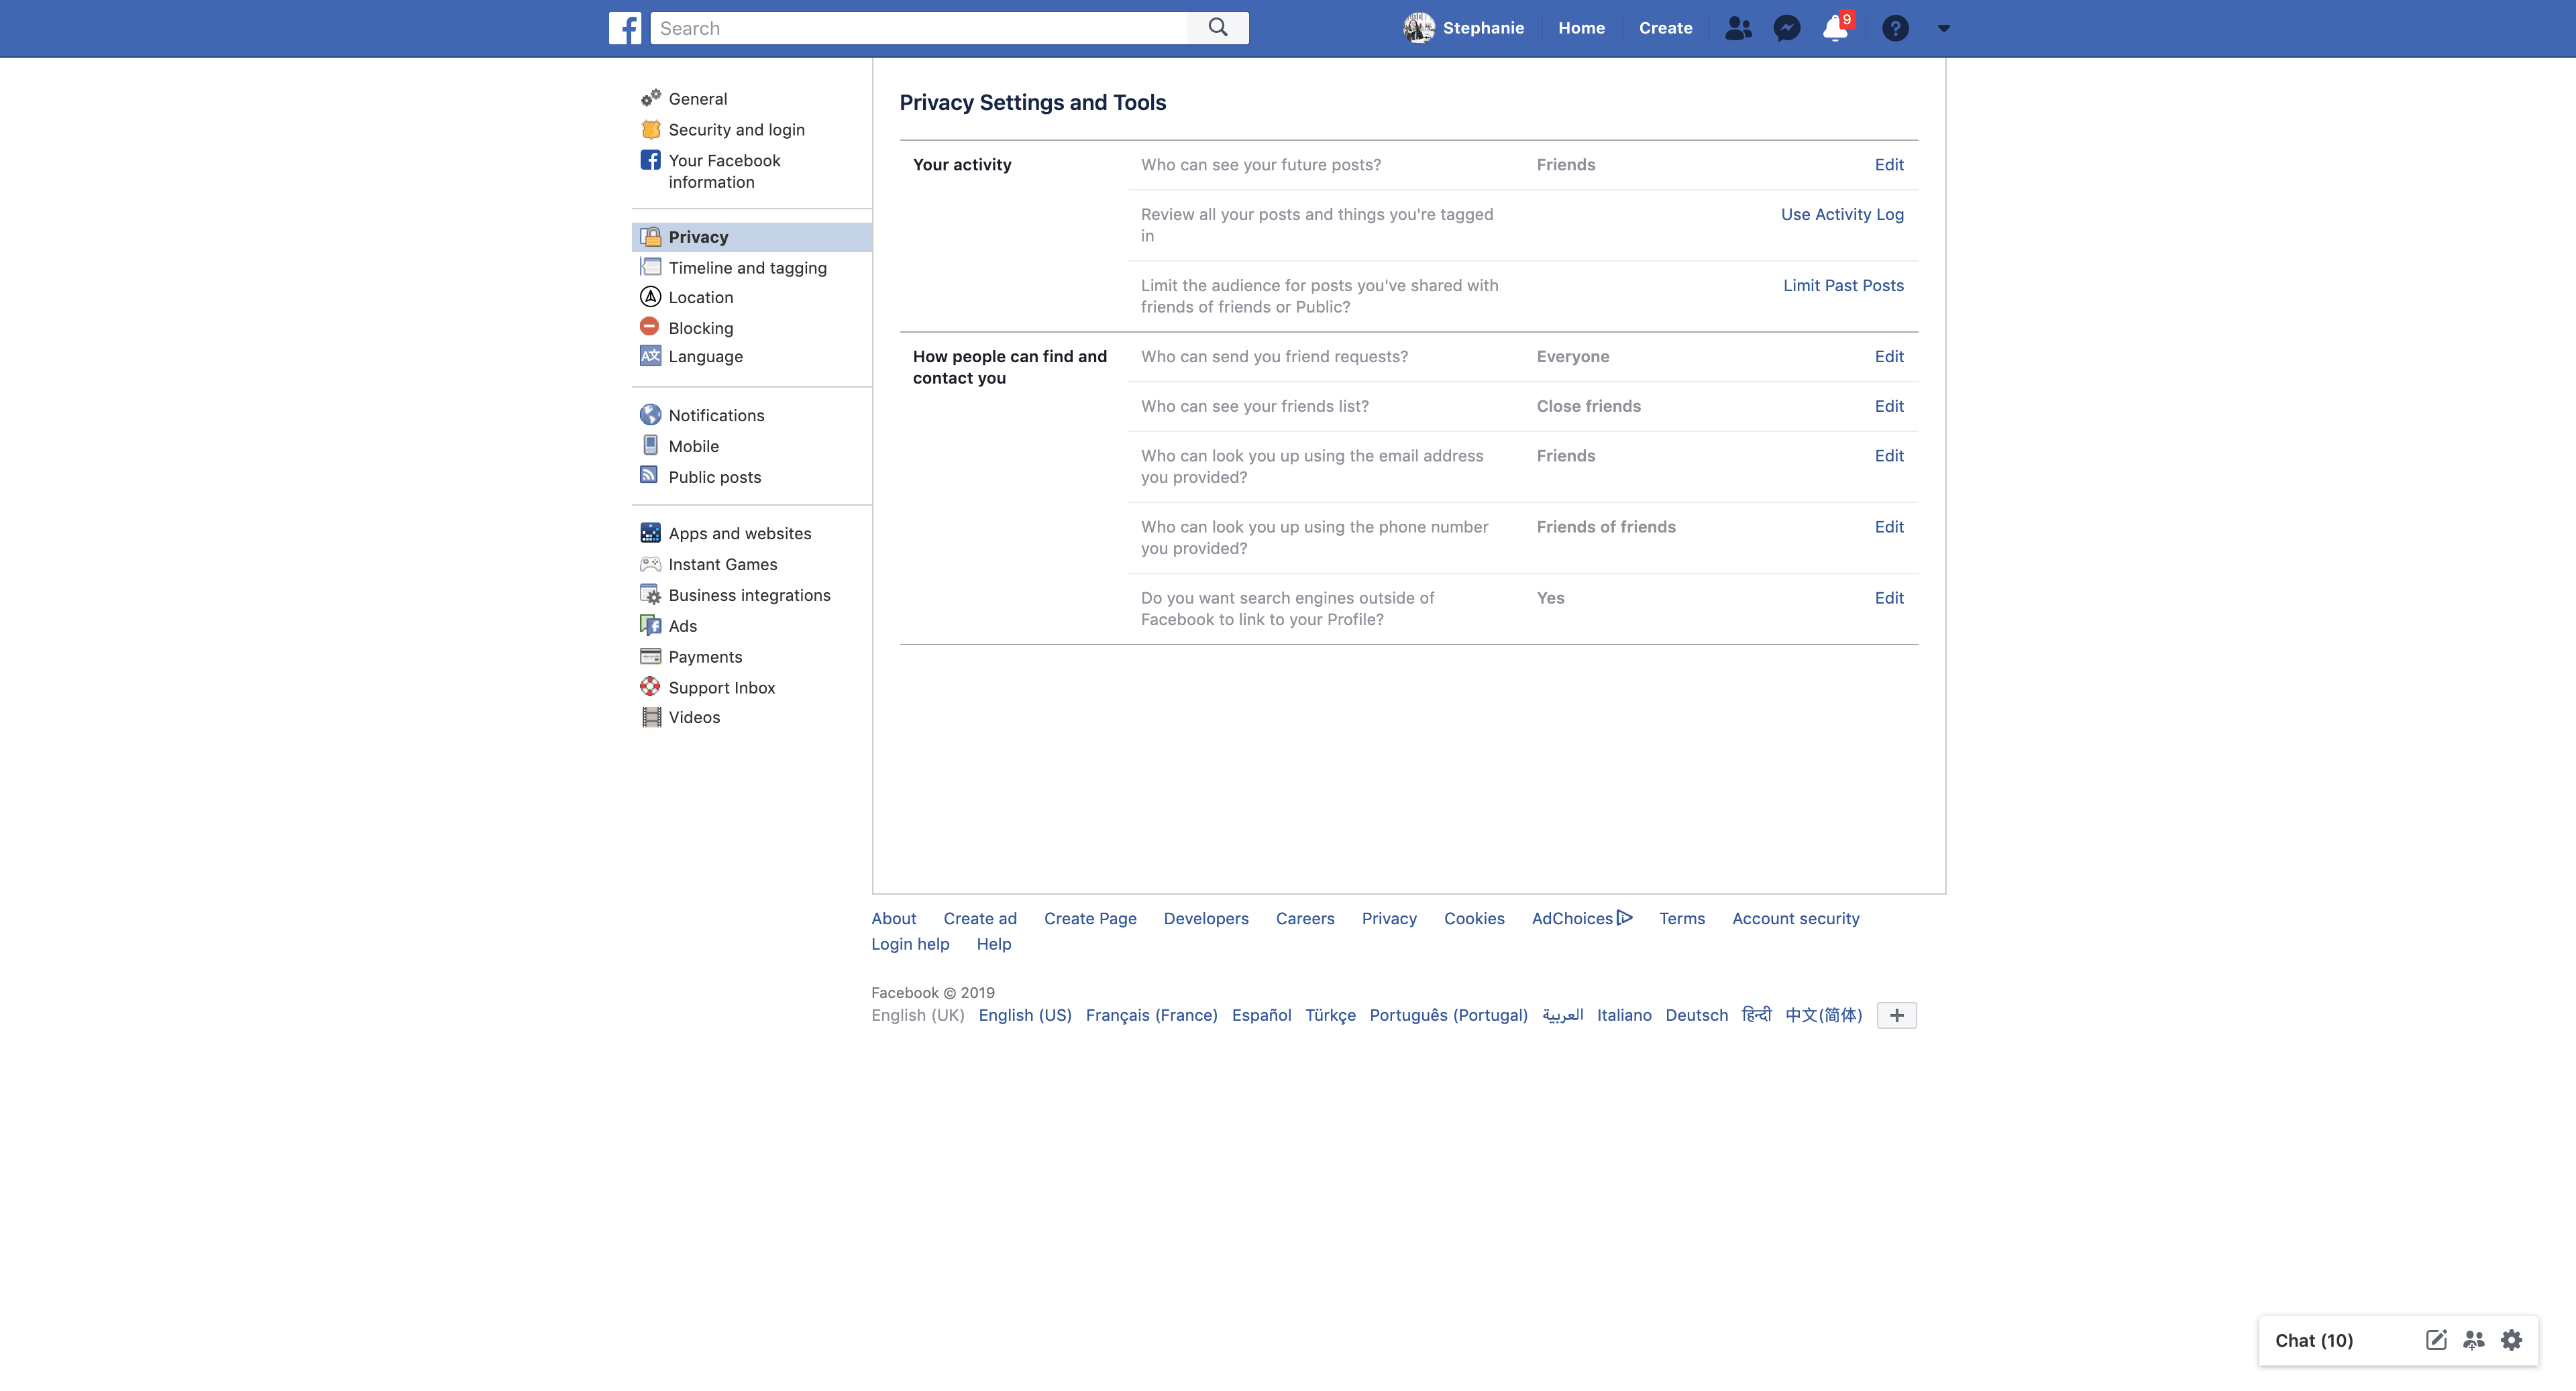 Privacy Settings by Facebook